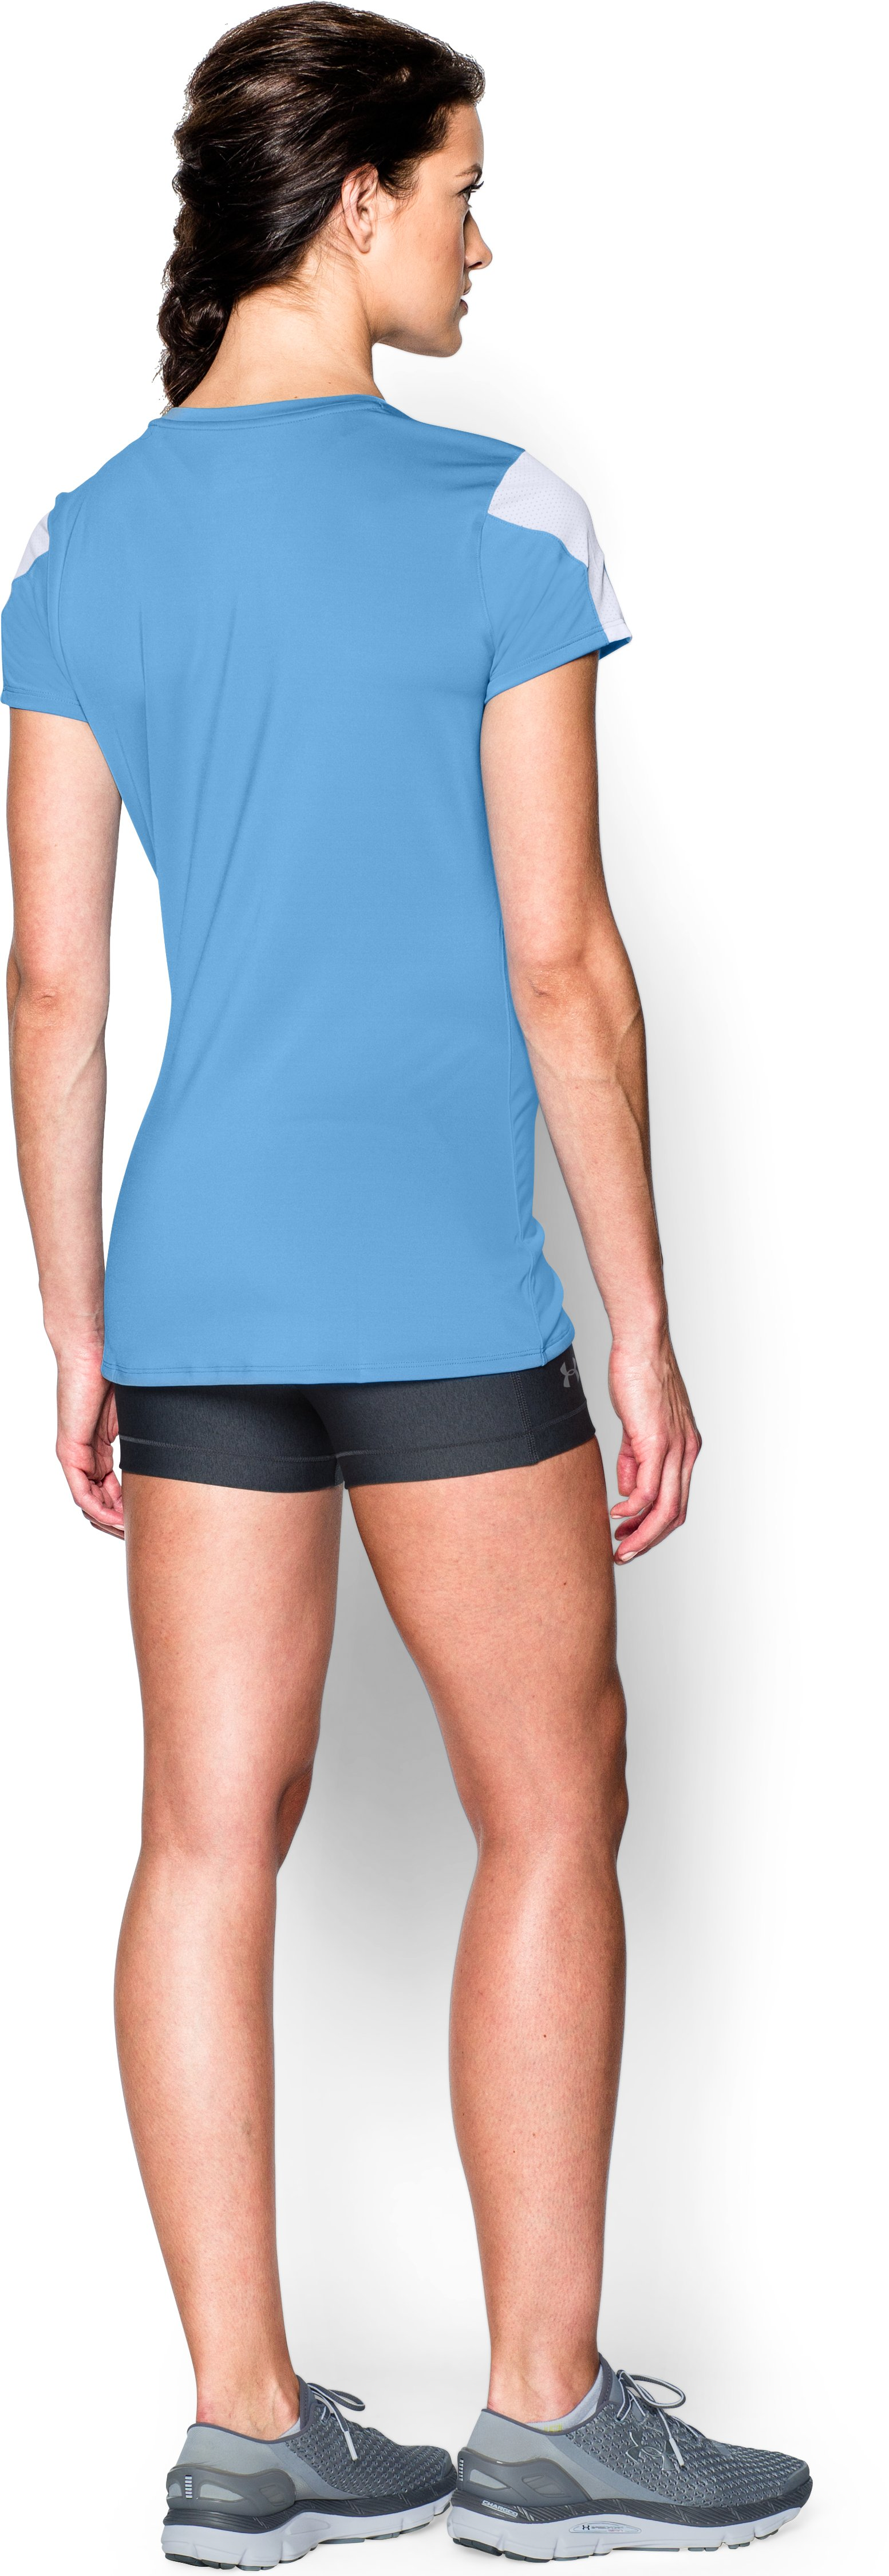 Women's UA Block Party Short Sleeve Jersey, Carolina Blue, Back